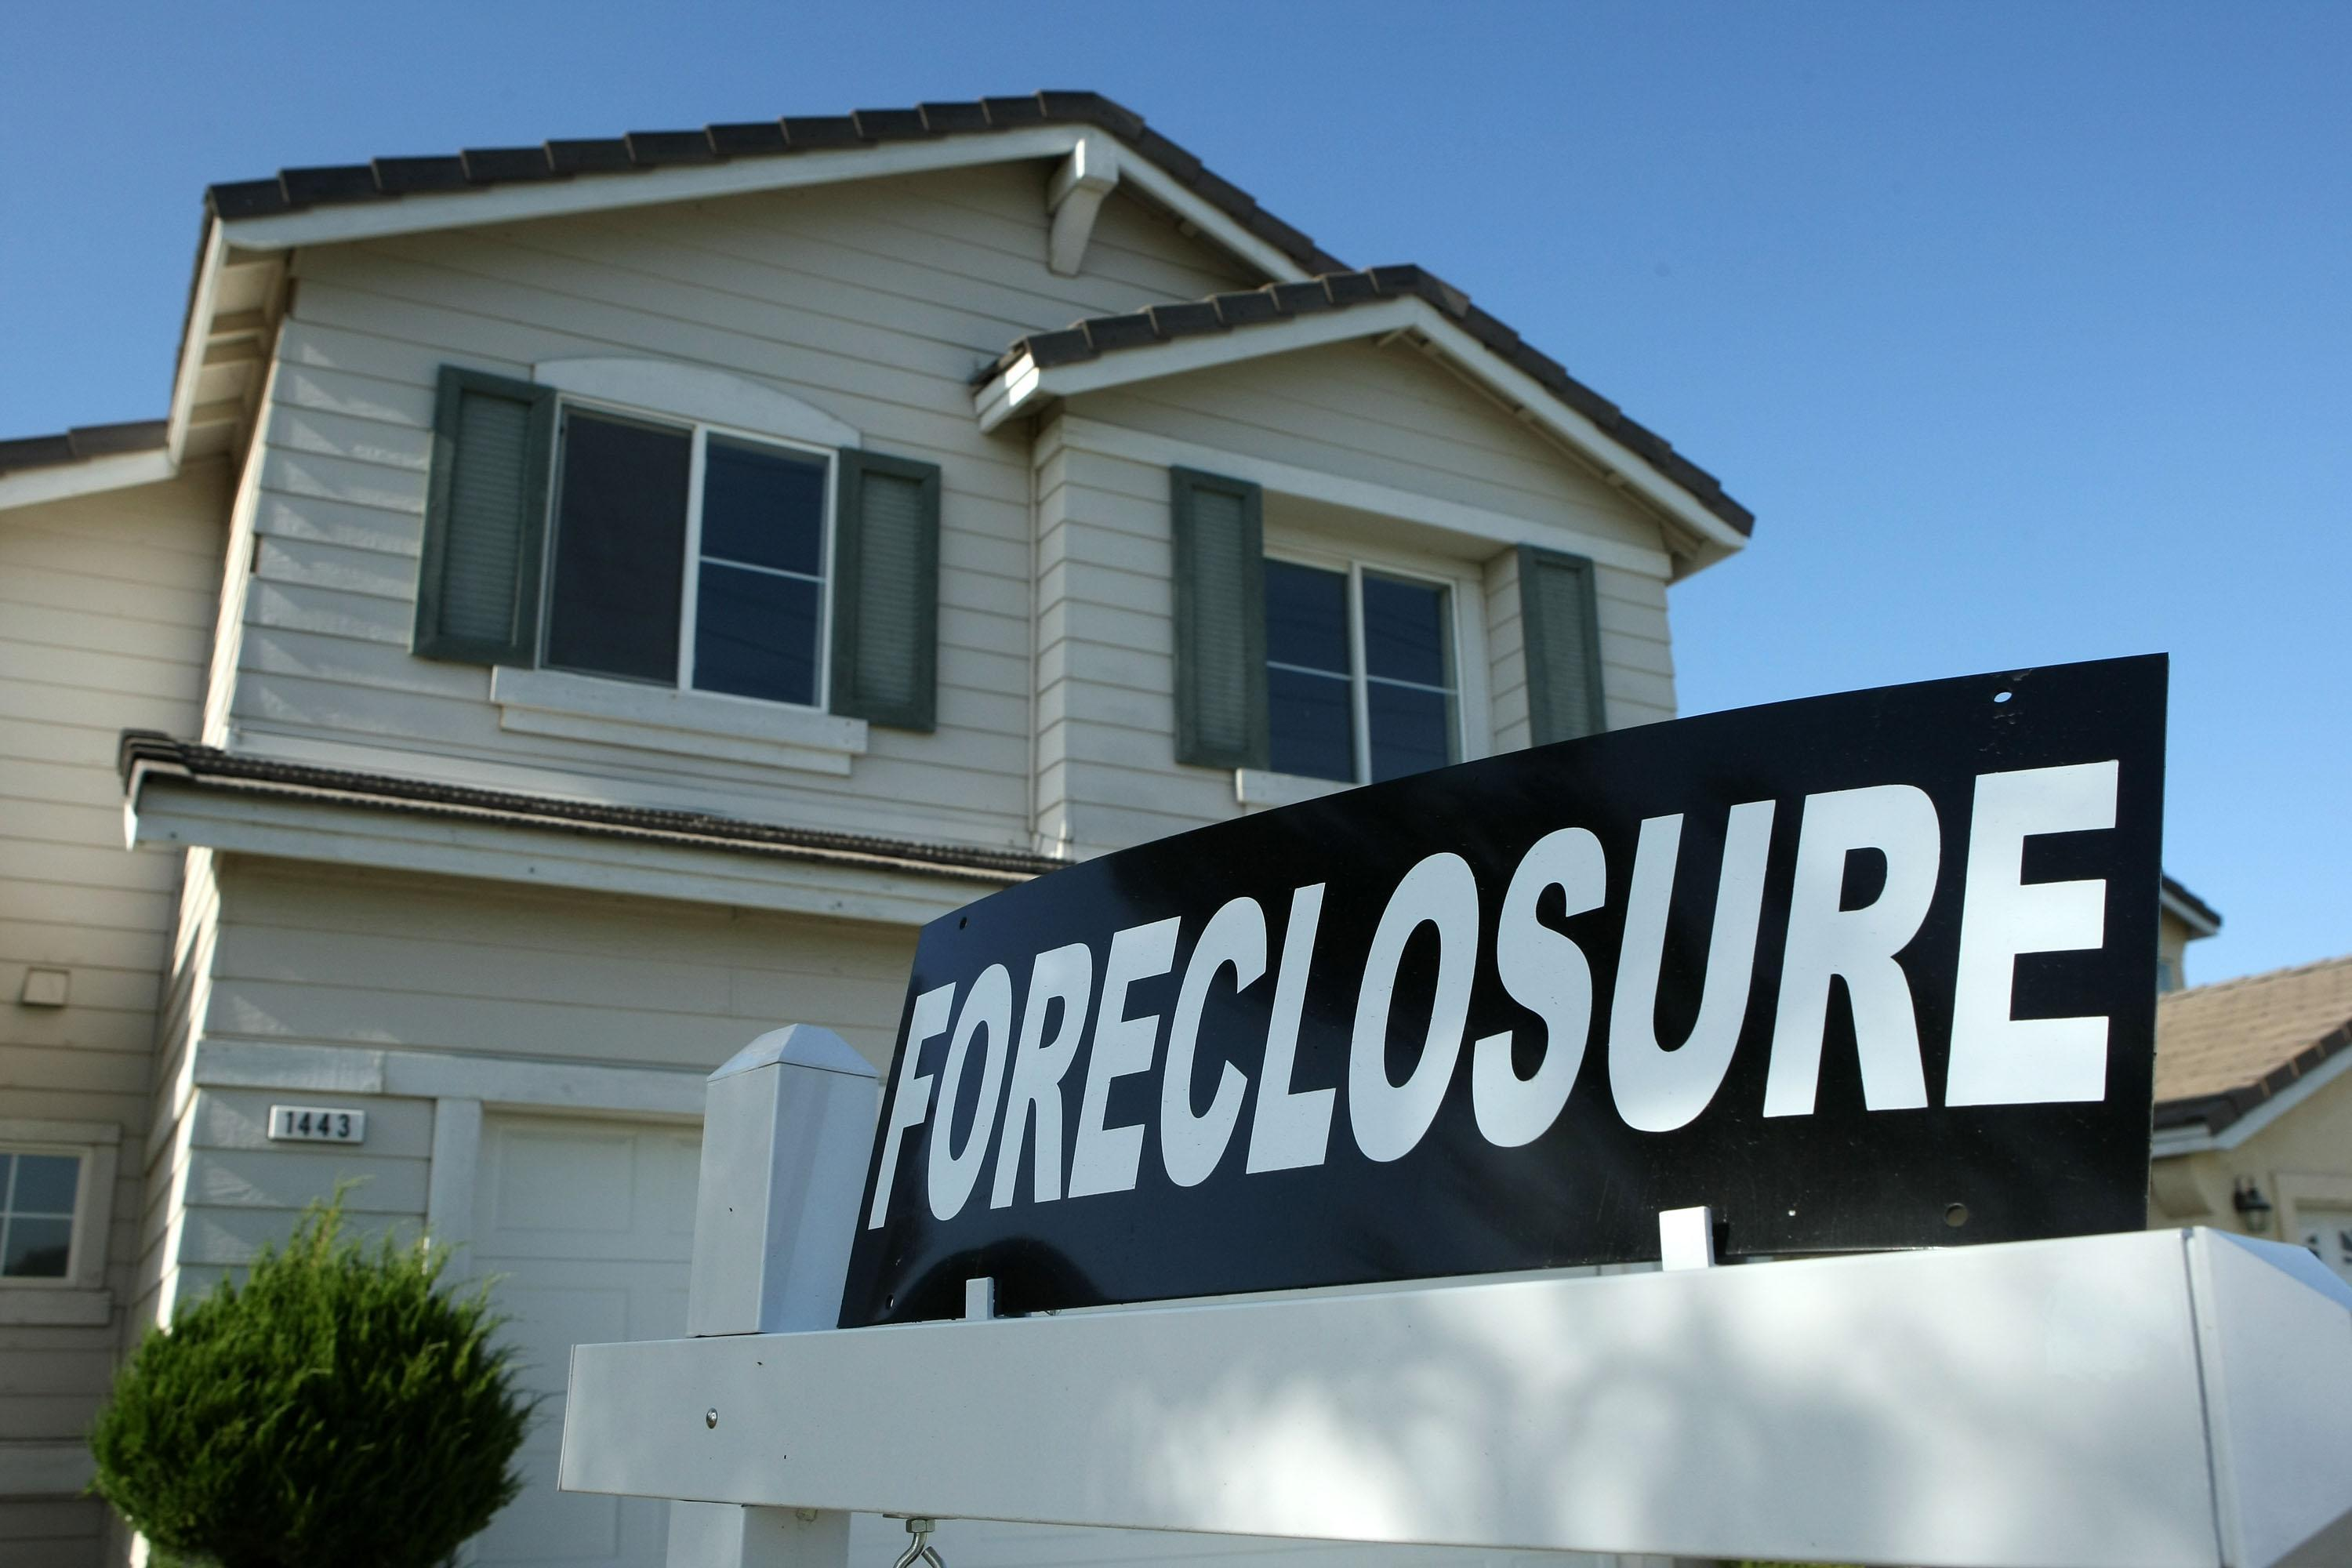 Maritime foreclosure process